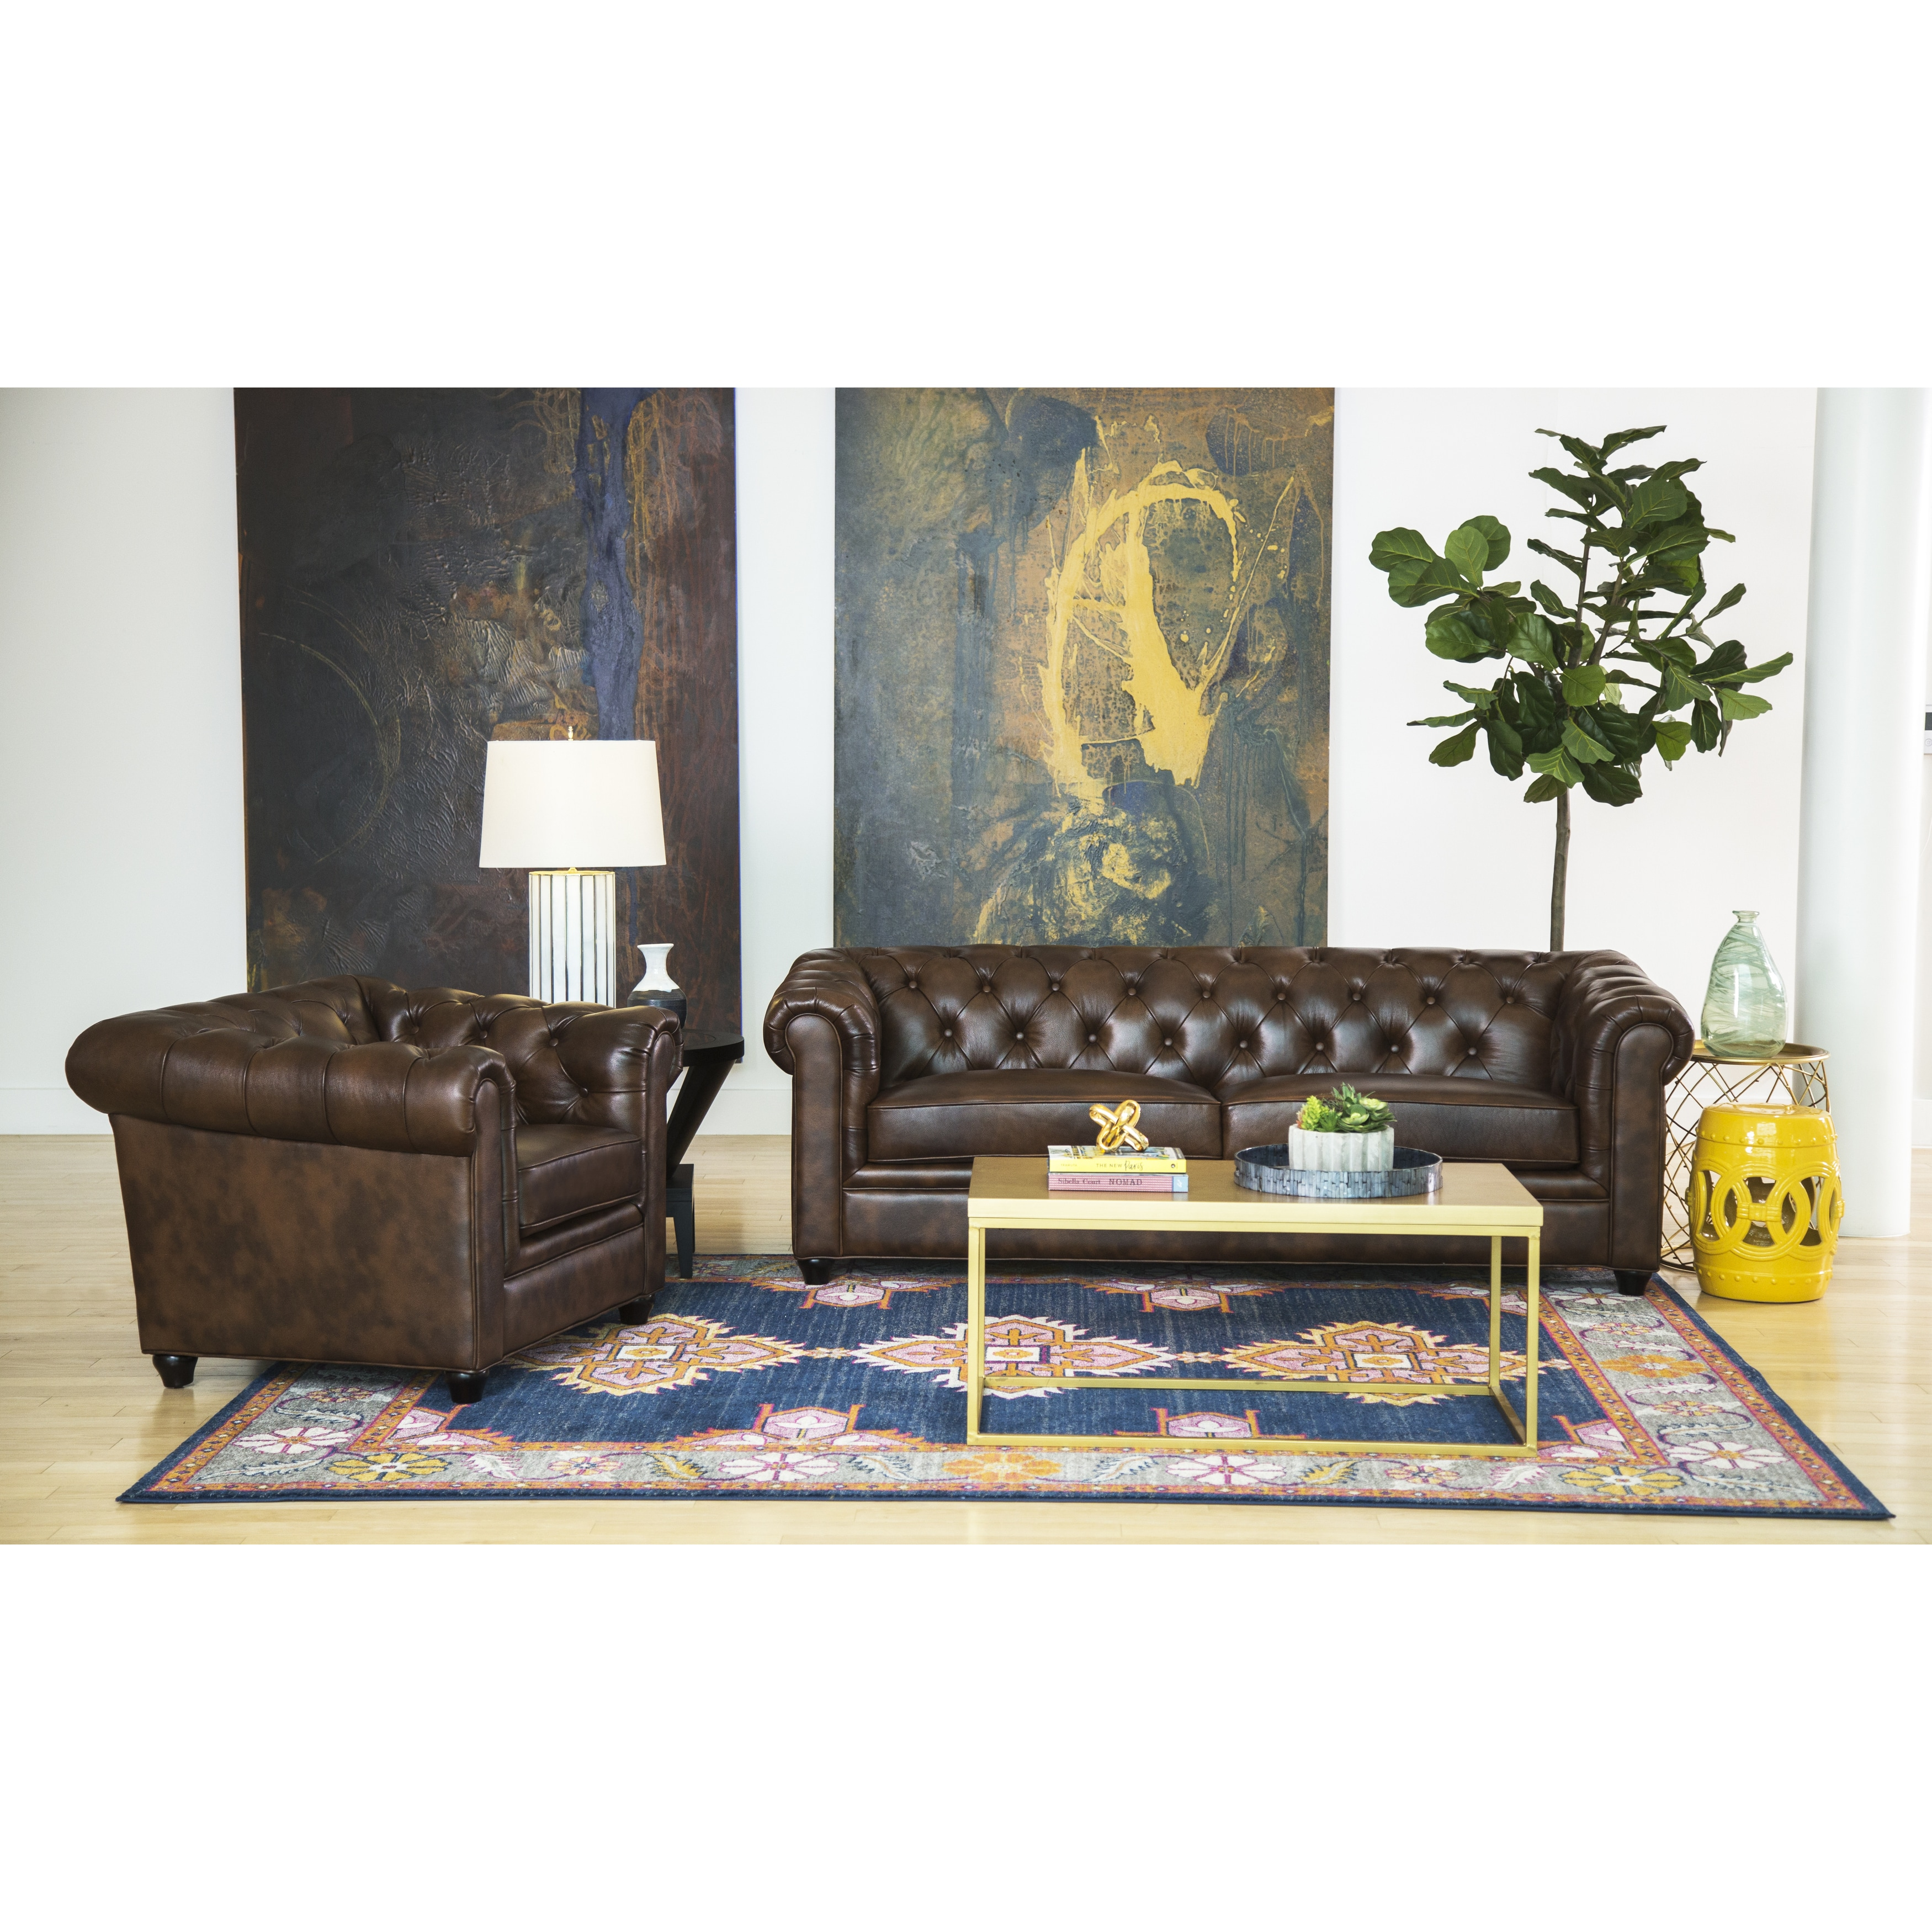 living room set leather ideas for small apartments shop abbyson tuscan top grain chesterfield 2 piece